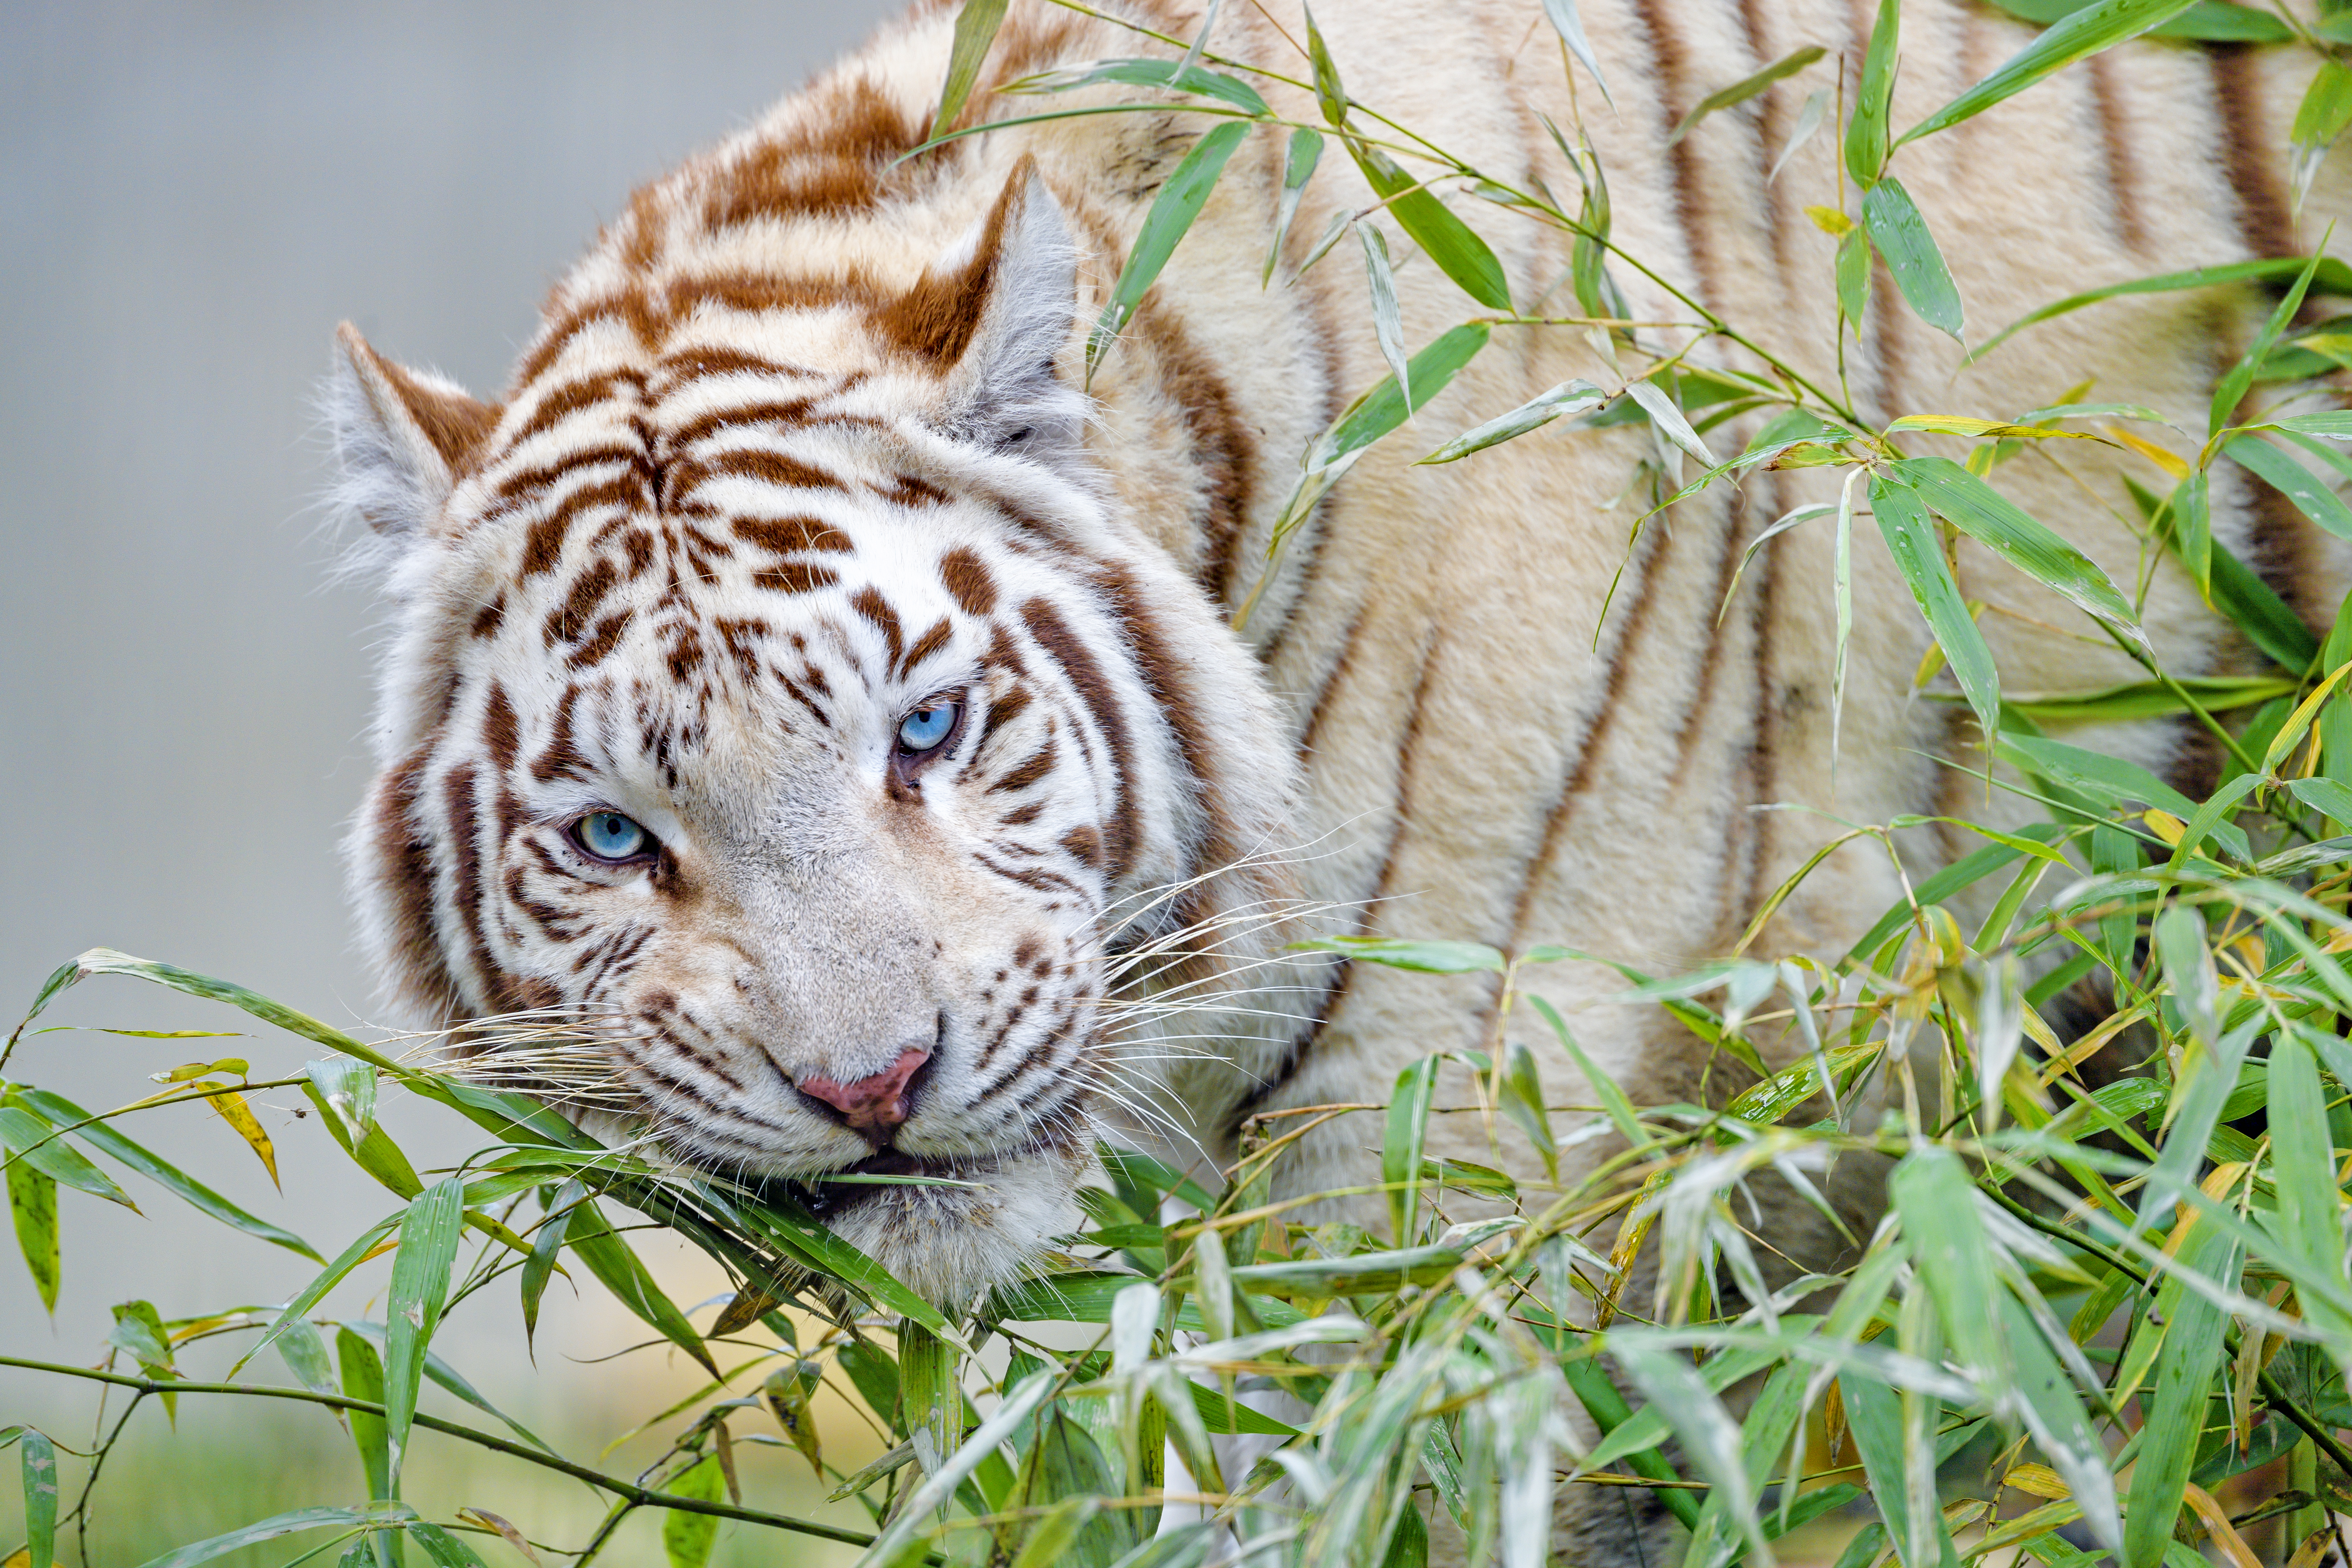 103835 download wallpaper Animals, White Tiger, Tiger, Branch, Bamboo, Big Cat screensavers and pictures for free